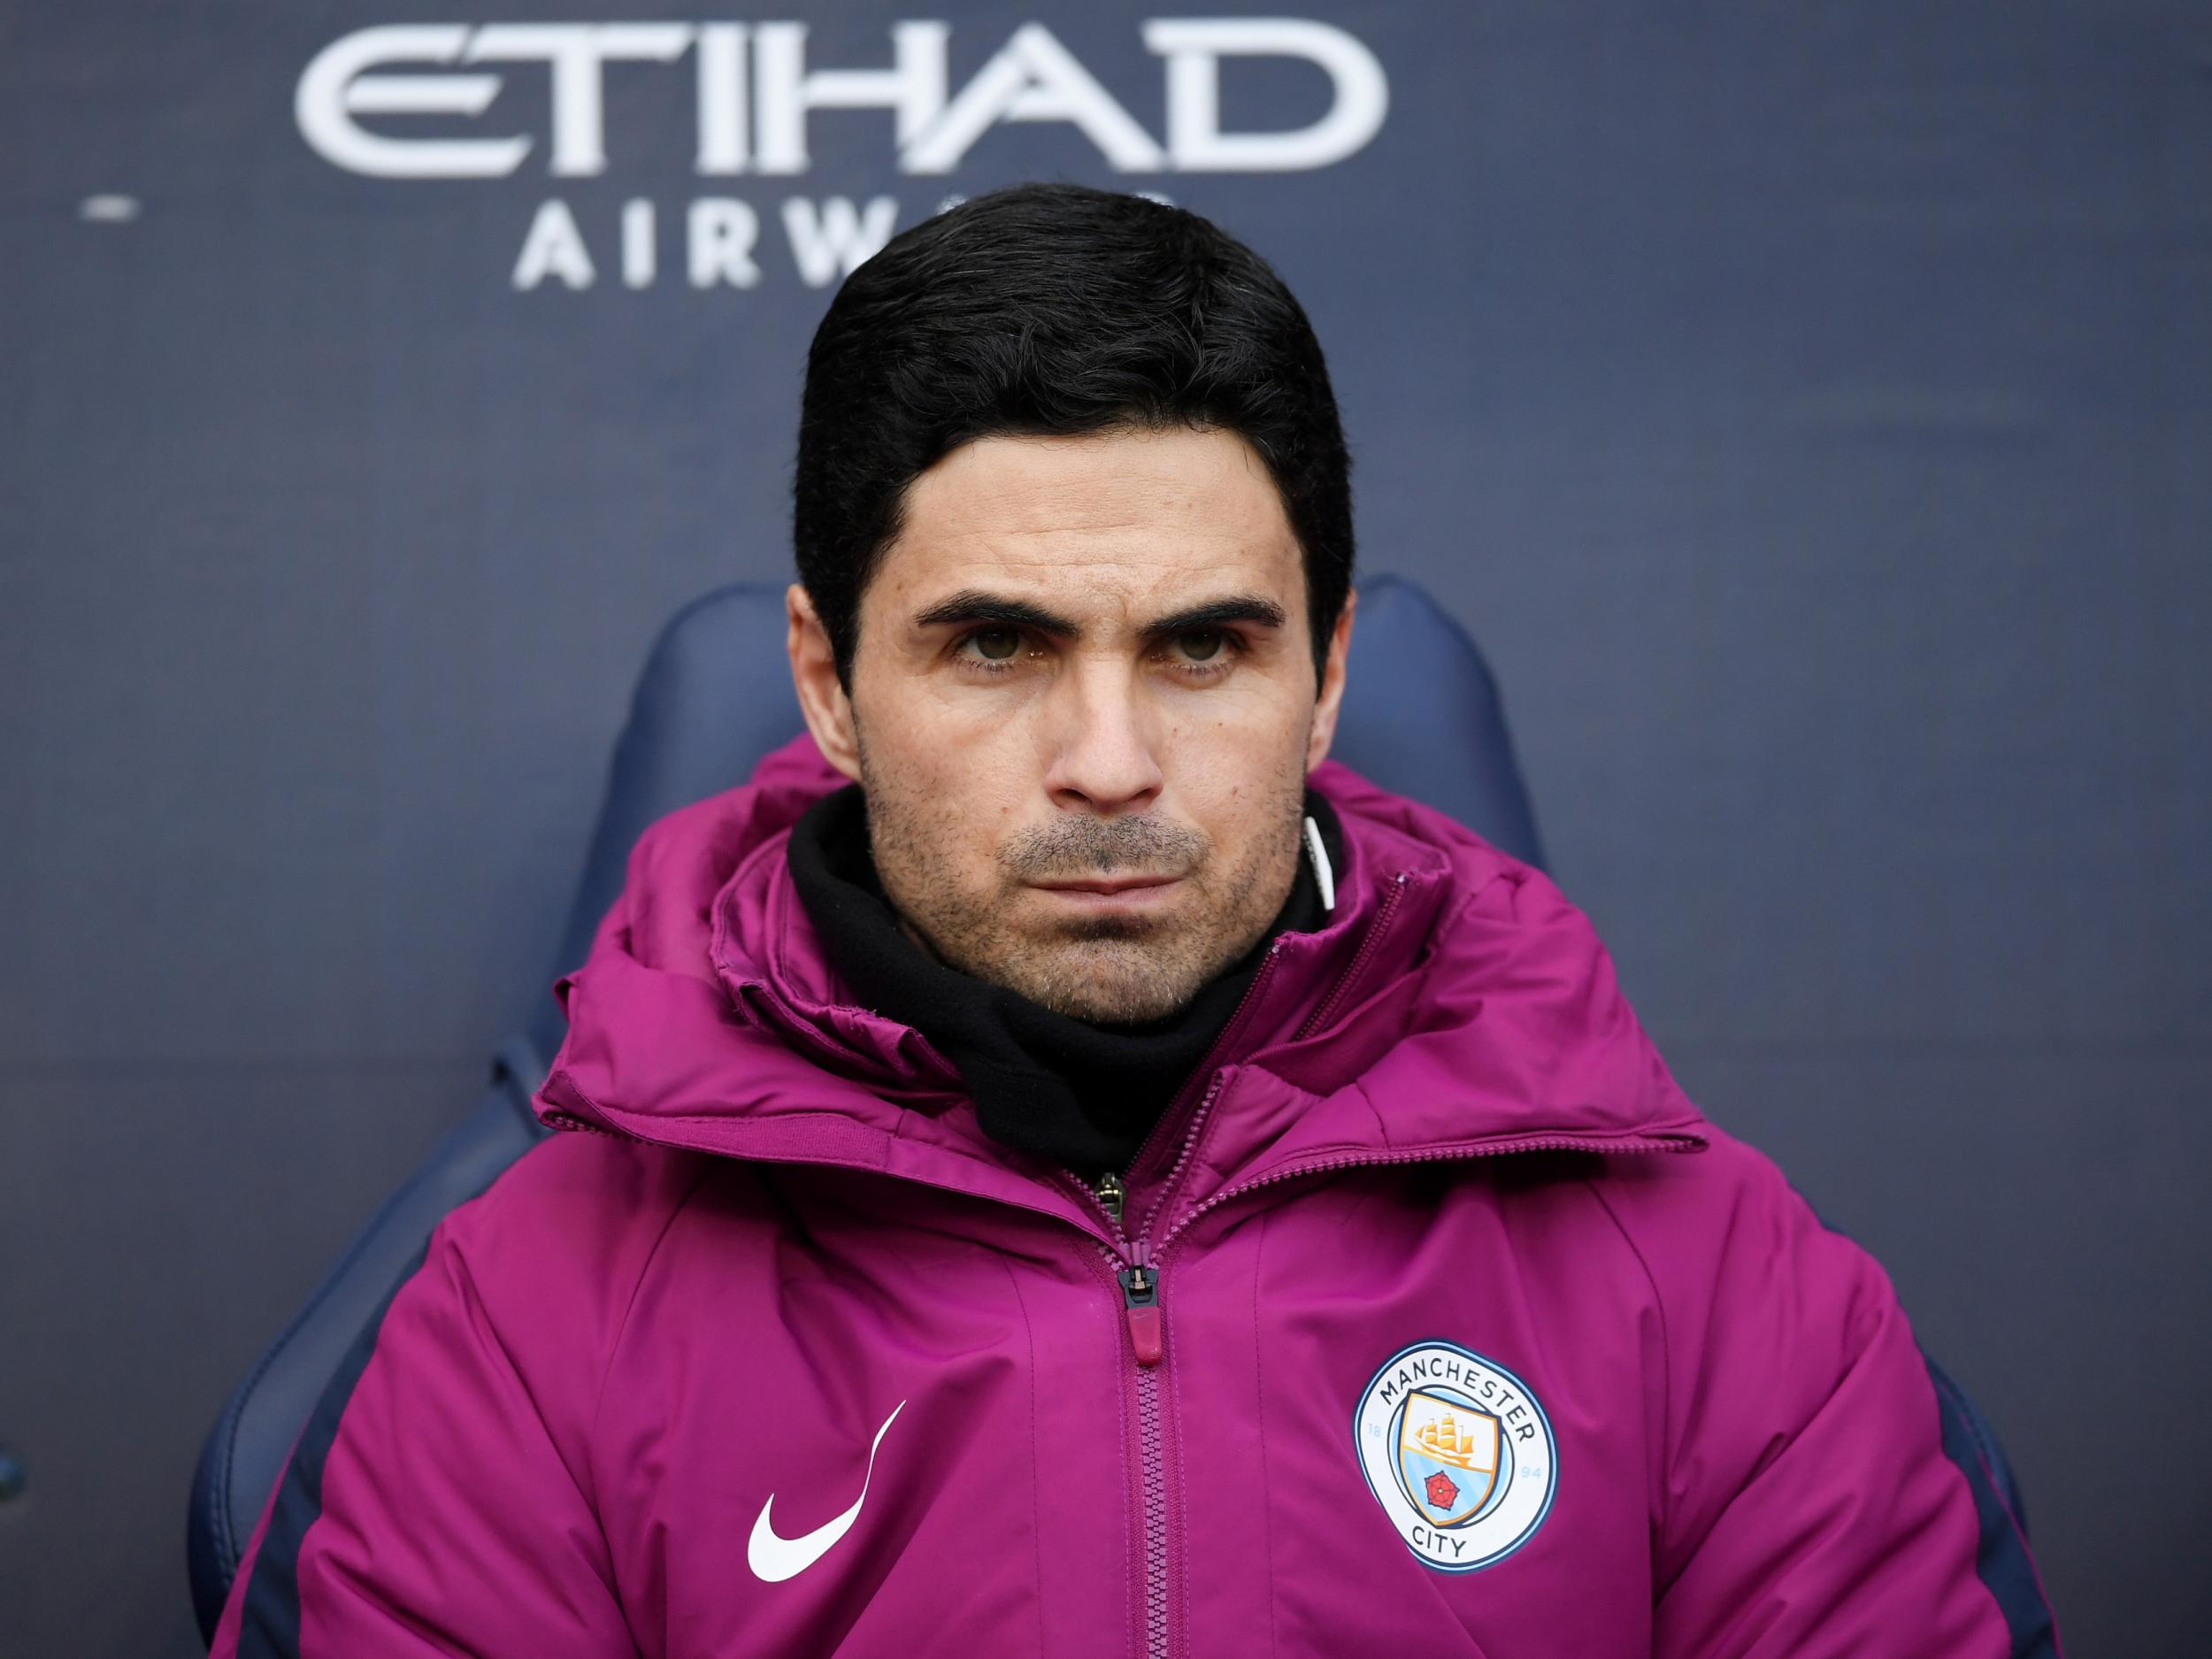 Next Arsenal Manager Mikel Arteta First Choice To Take Over From Arsene Wenger As Max Allegri Eyes Juventus Stay The Independent The Independent